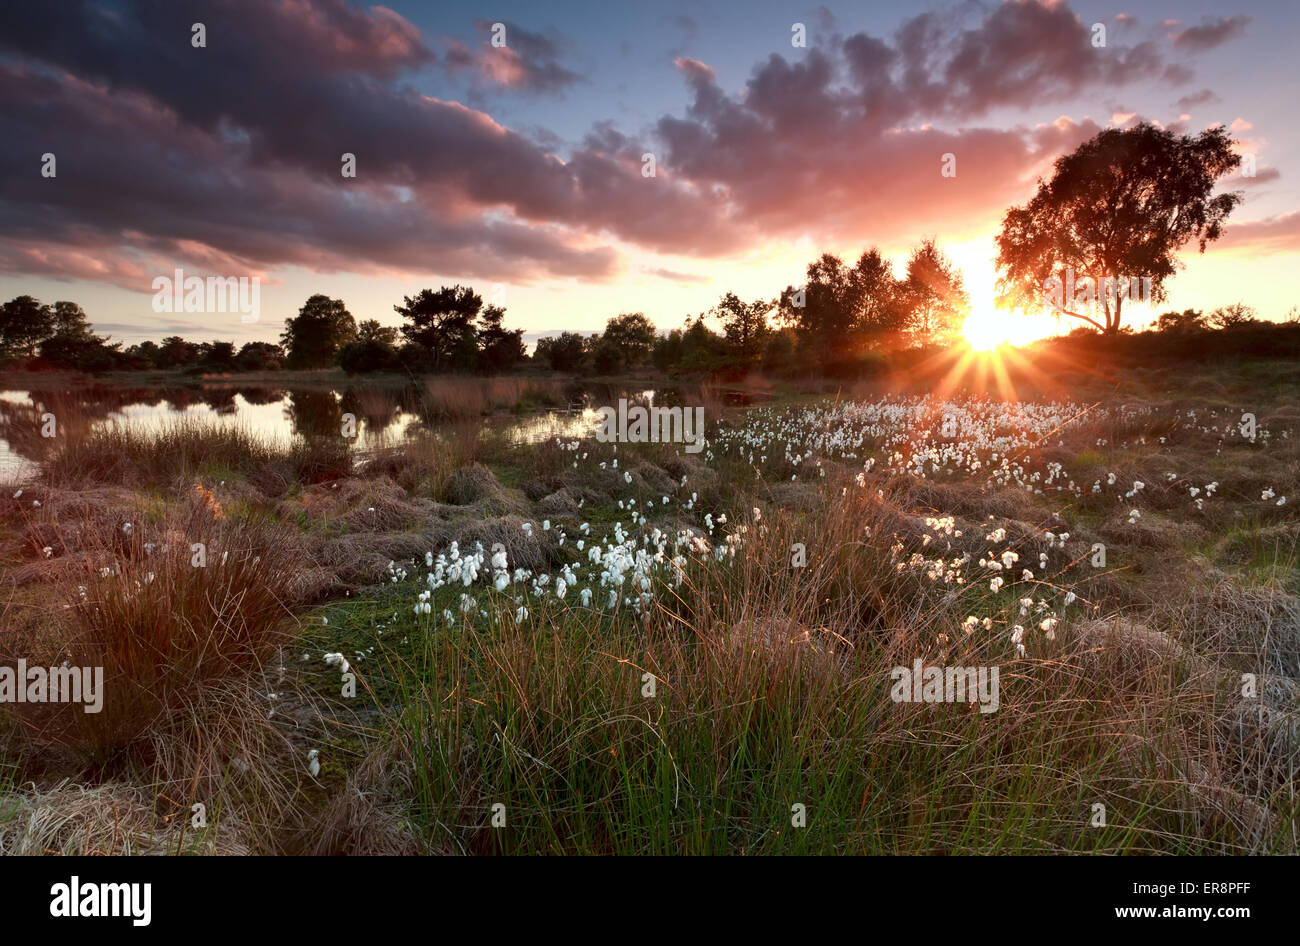 gold sunset over lake with cottongrass, North Brabant, Netherlands - Stock Image